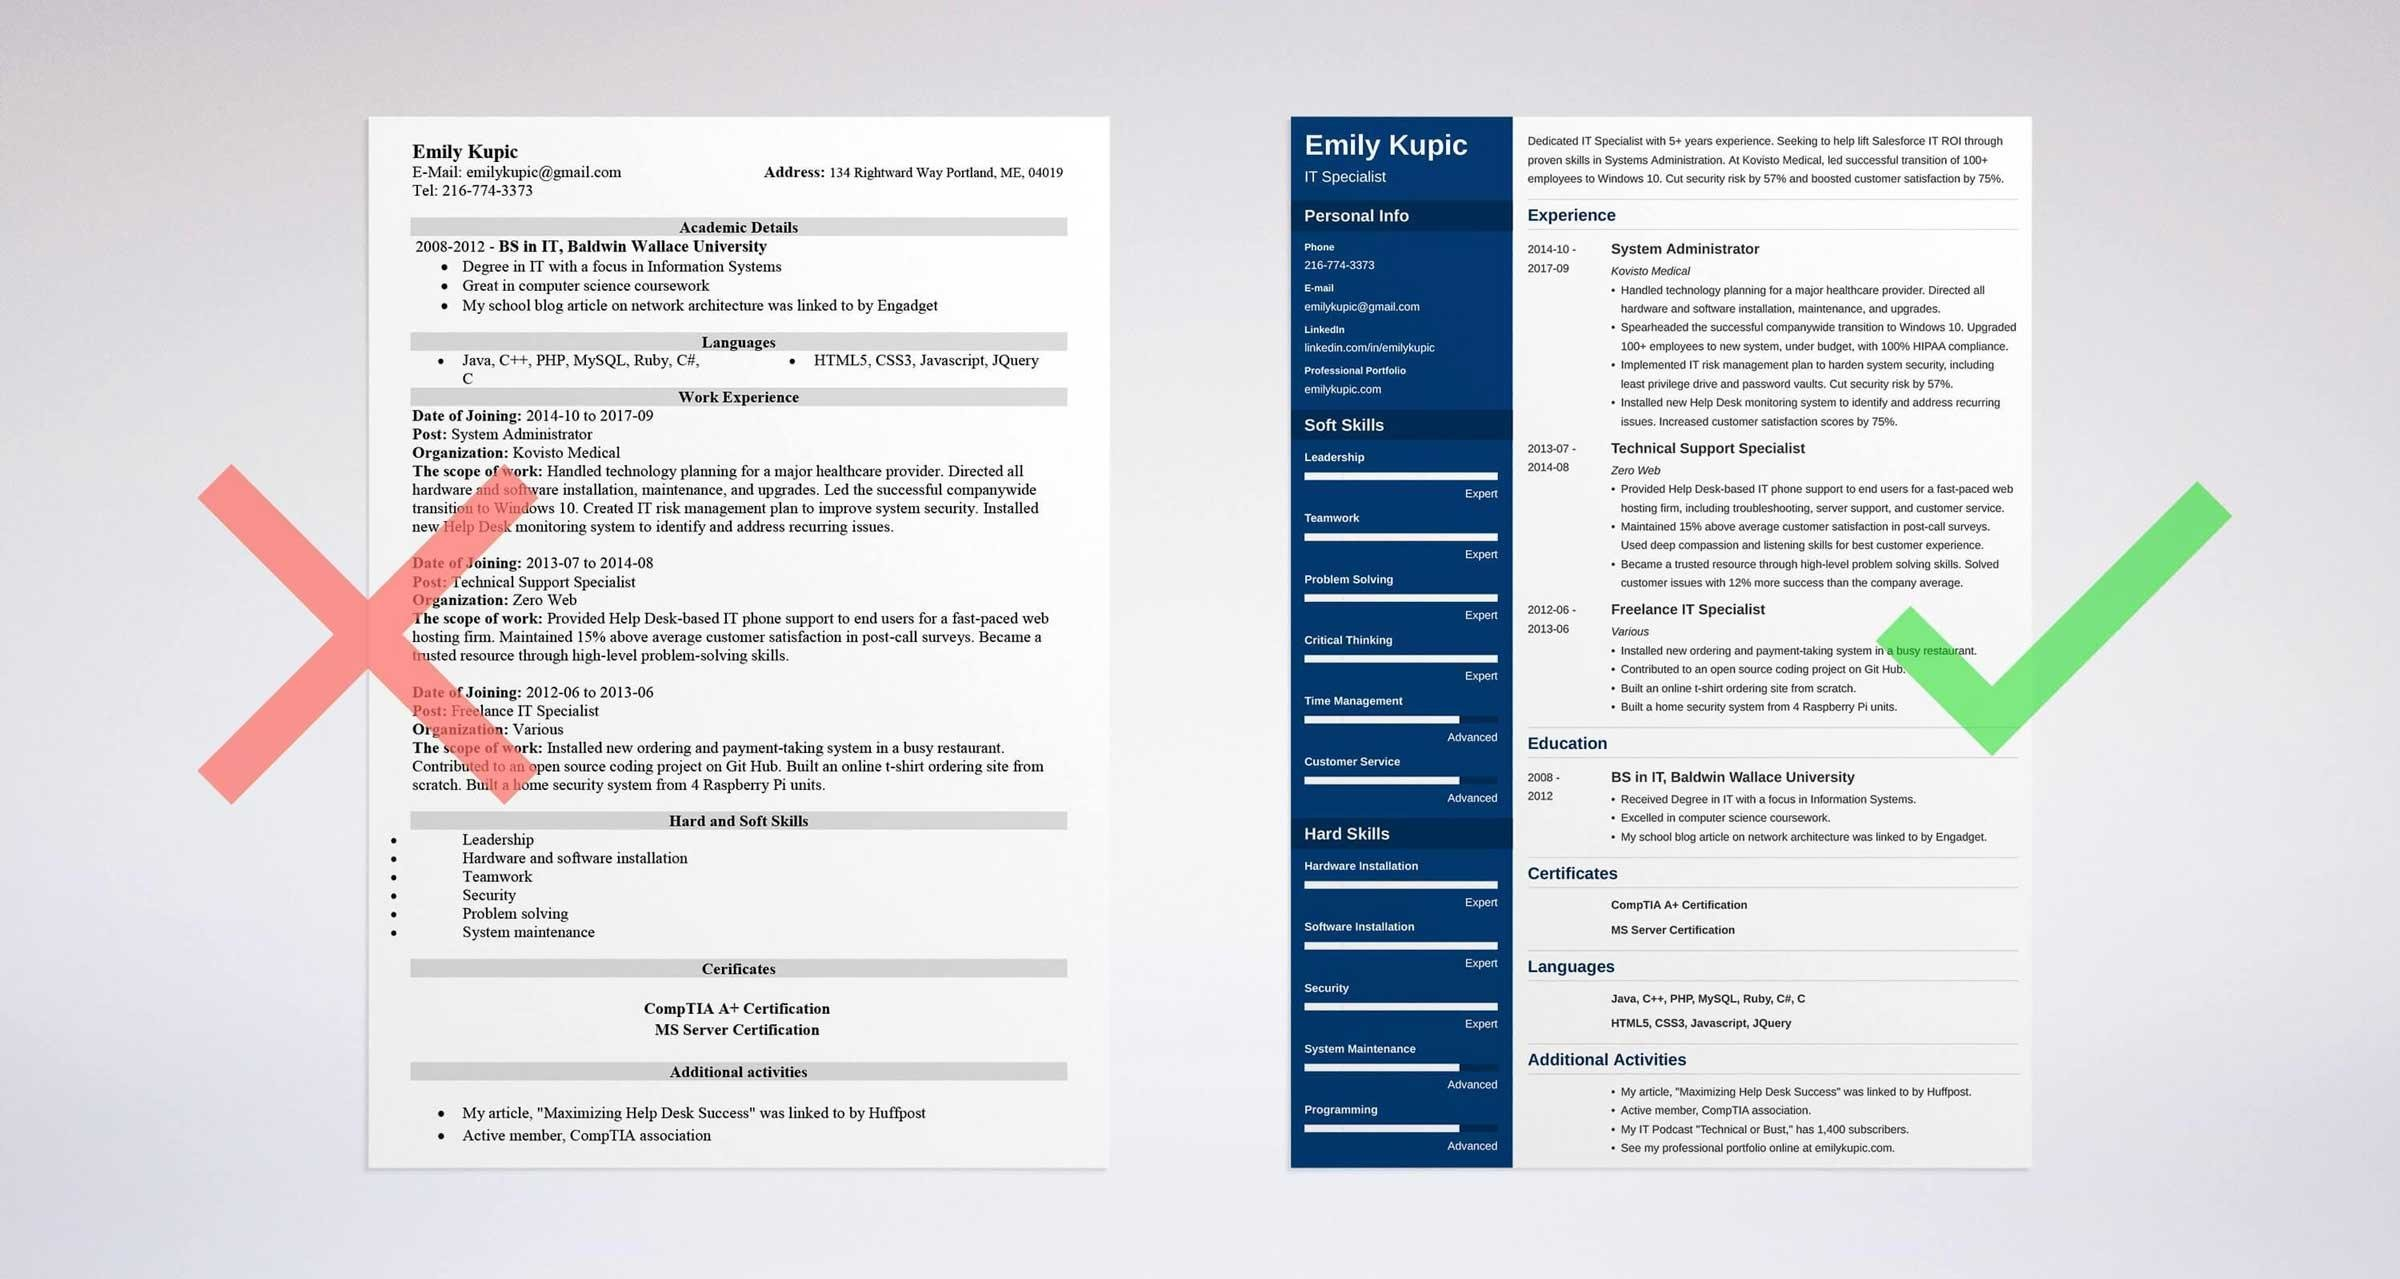 20 resume profile examples  how to write a professional